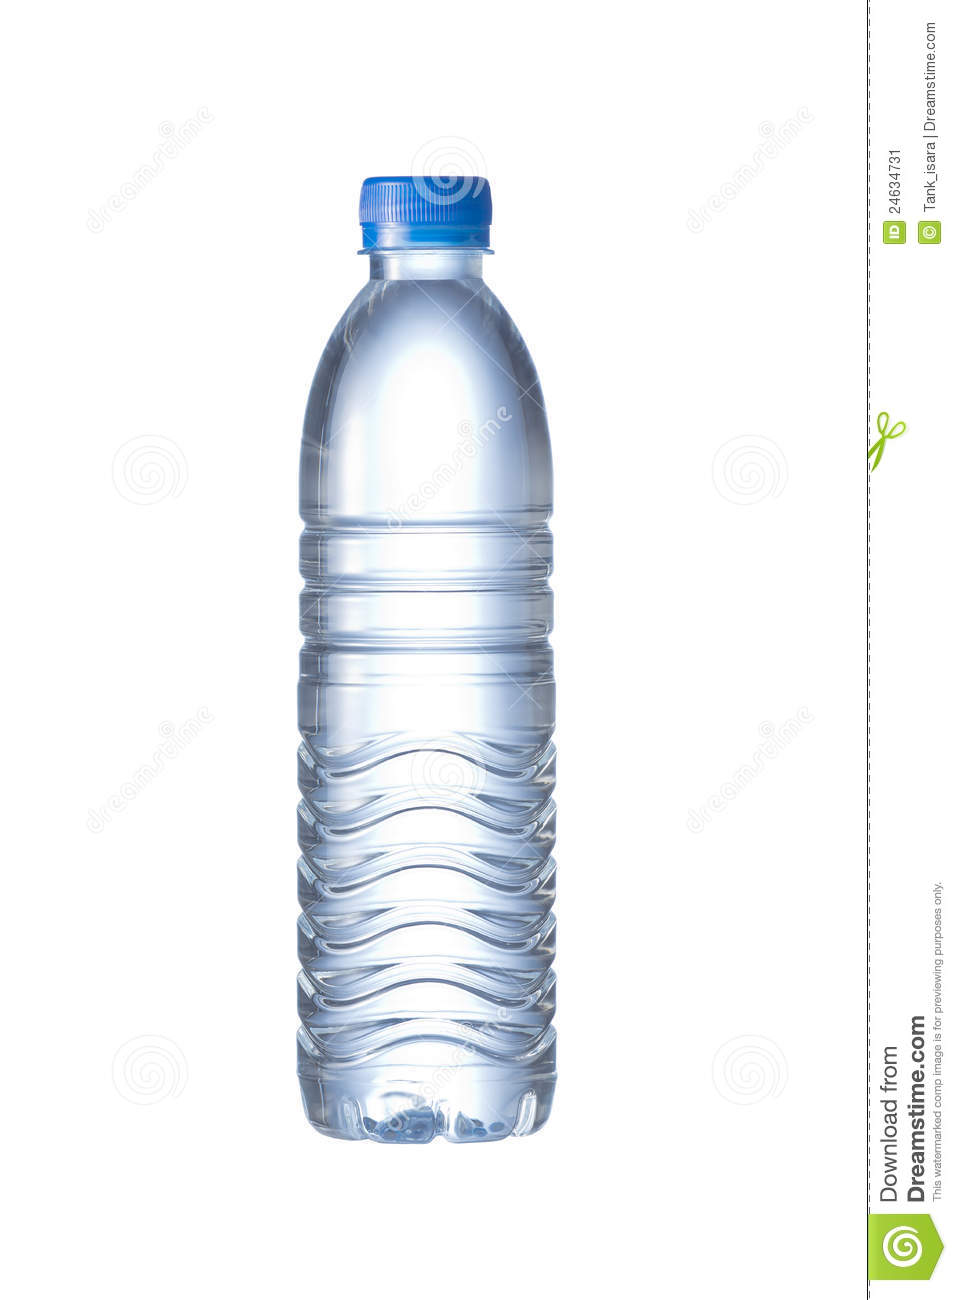 A Pet Bottle Of Water Stock Image Image 24634731